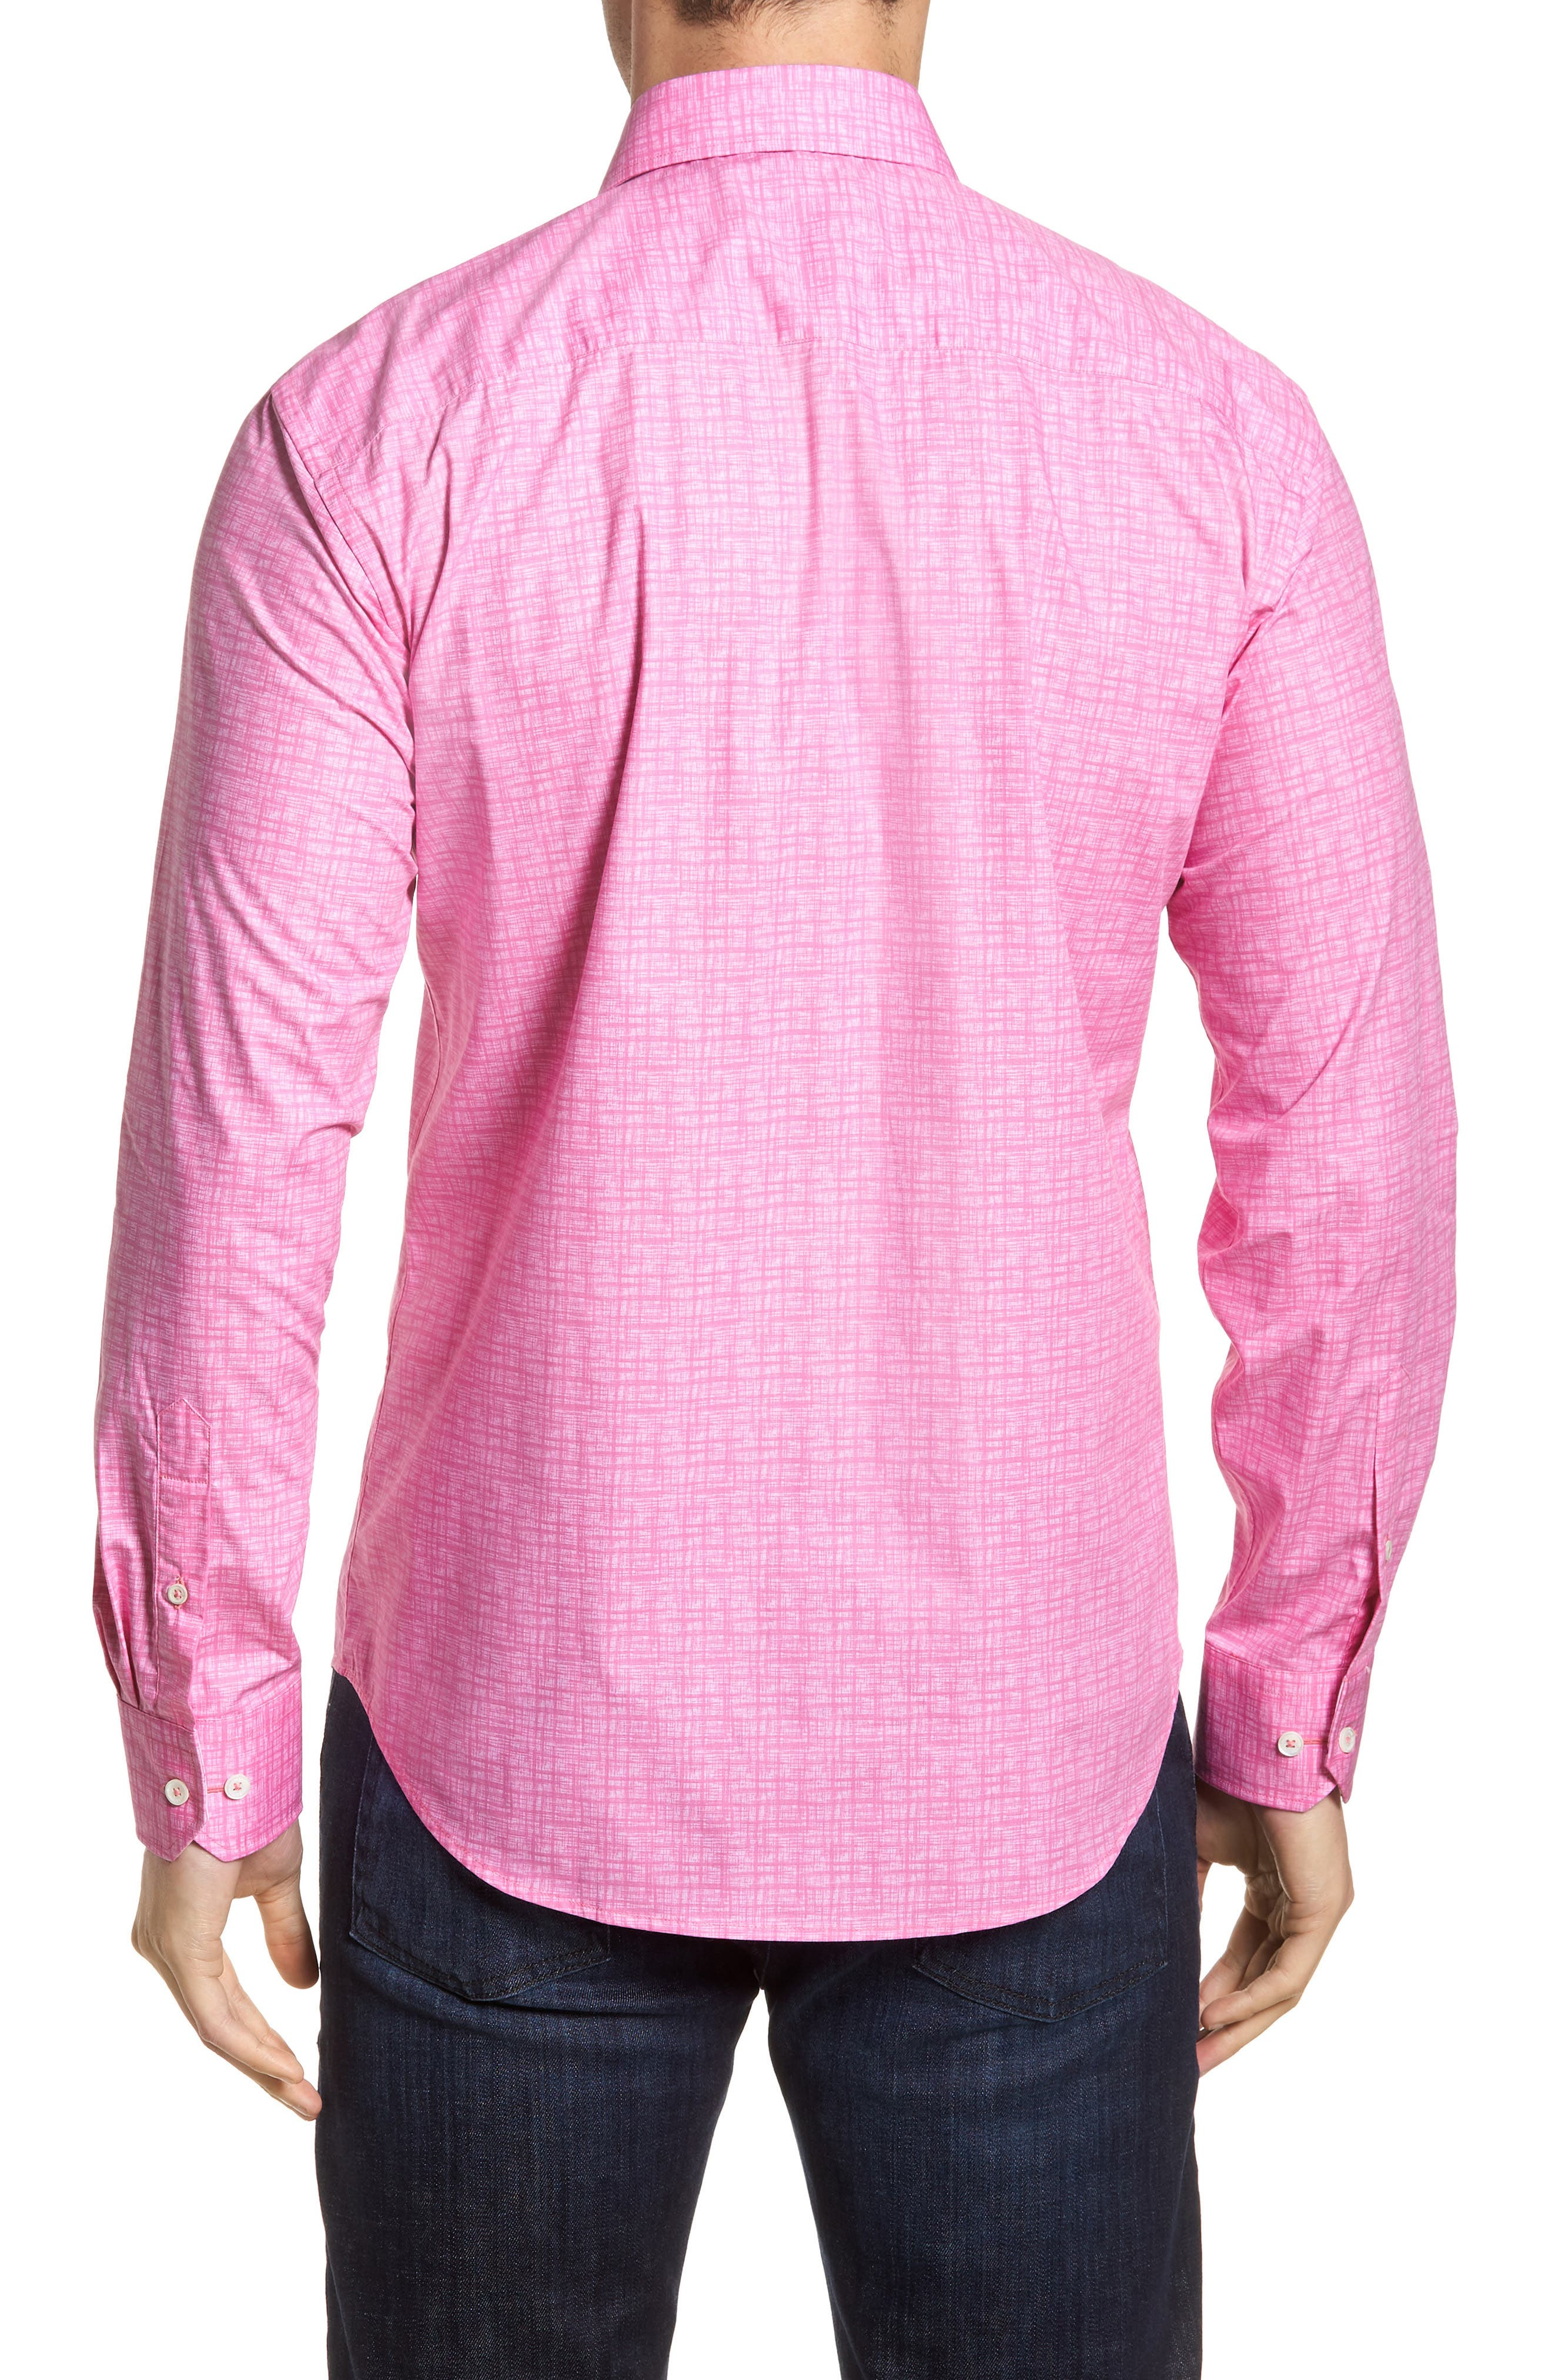 Freehand Shaped Fit Sport Shirt,                             Alternate thumbnail 8, color,                             Pink